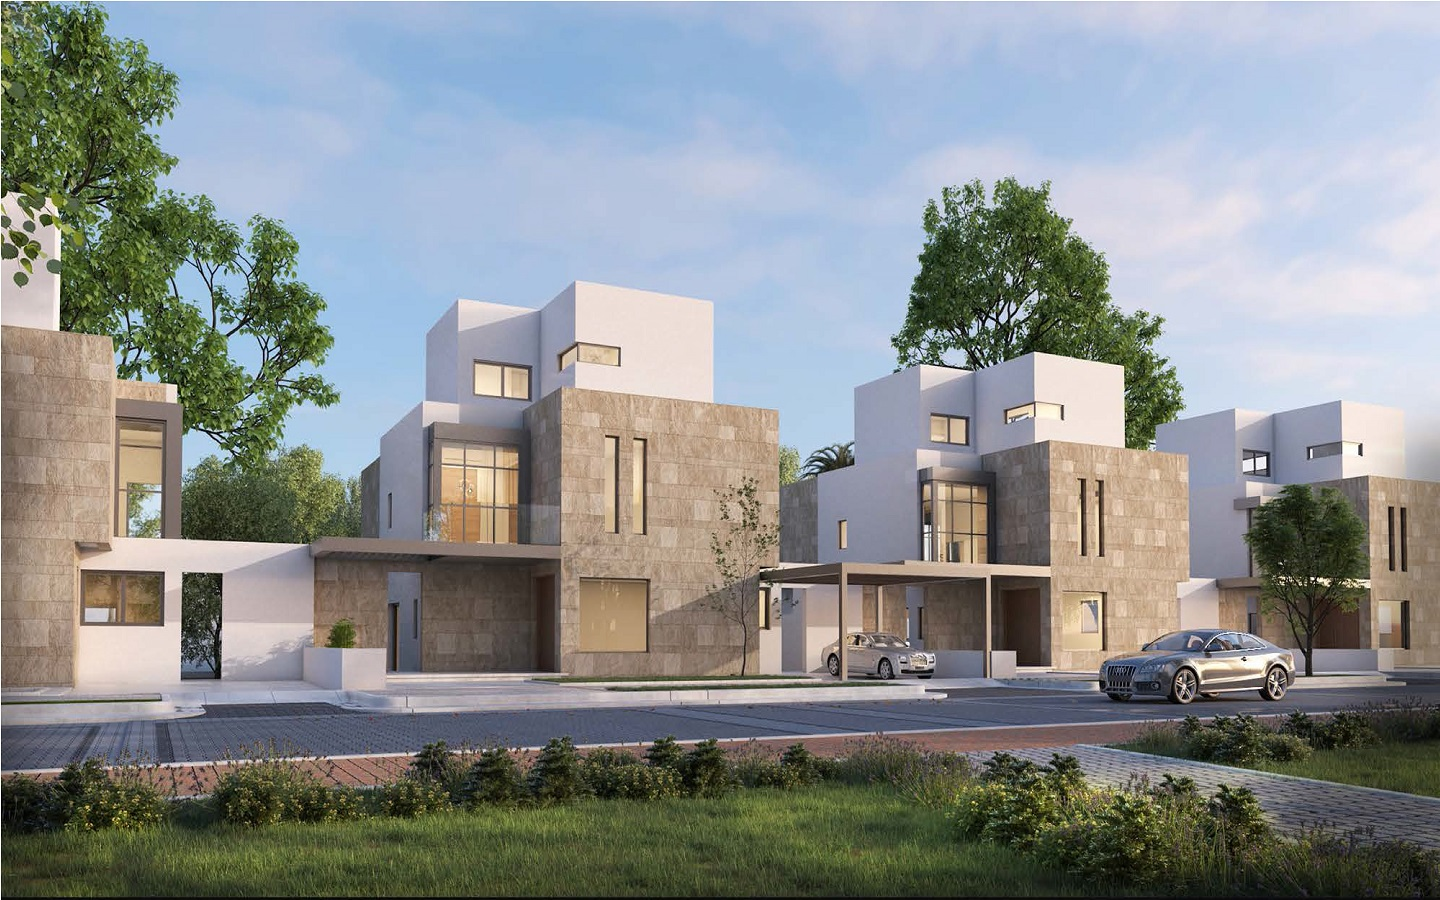 Alkarma Gates New Zayed - Alkarma Developments is Launching Soon New Compound, Alkarma Gates Compound,, at New Zayed City Master Plan - Location and Prices- Amazing Villa For Sale, 8 Gates Real Estate Egypt